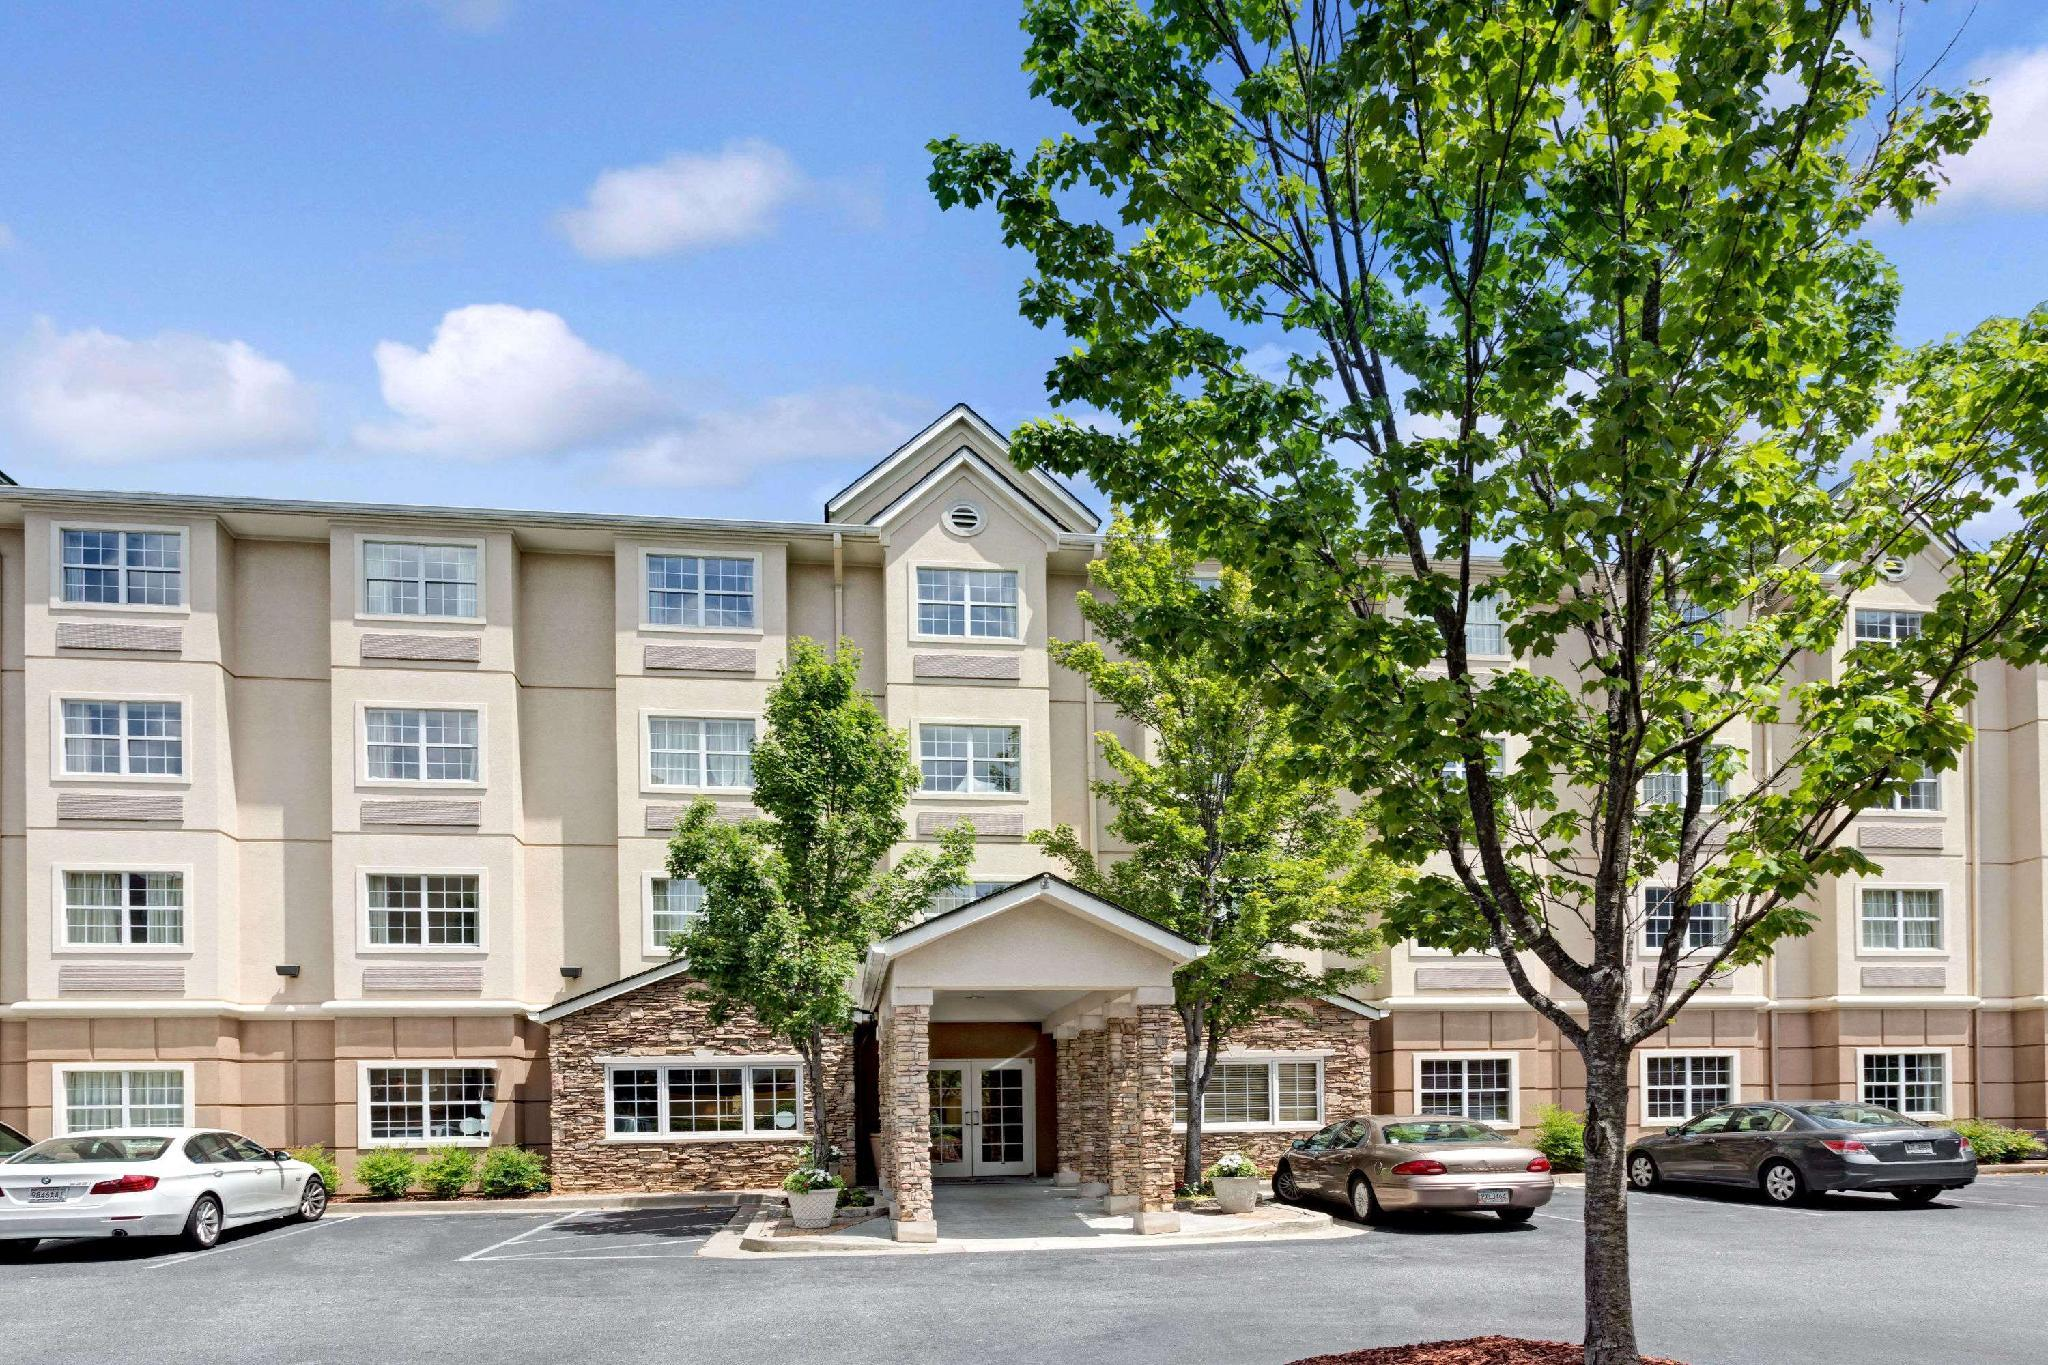 Microtel Inn And Suites By Wyndham Atlanta Perimeter Center